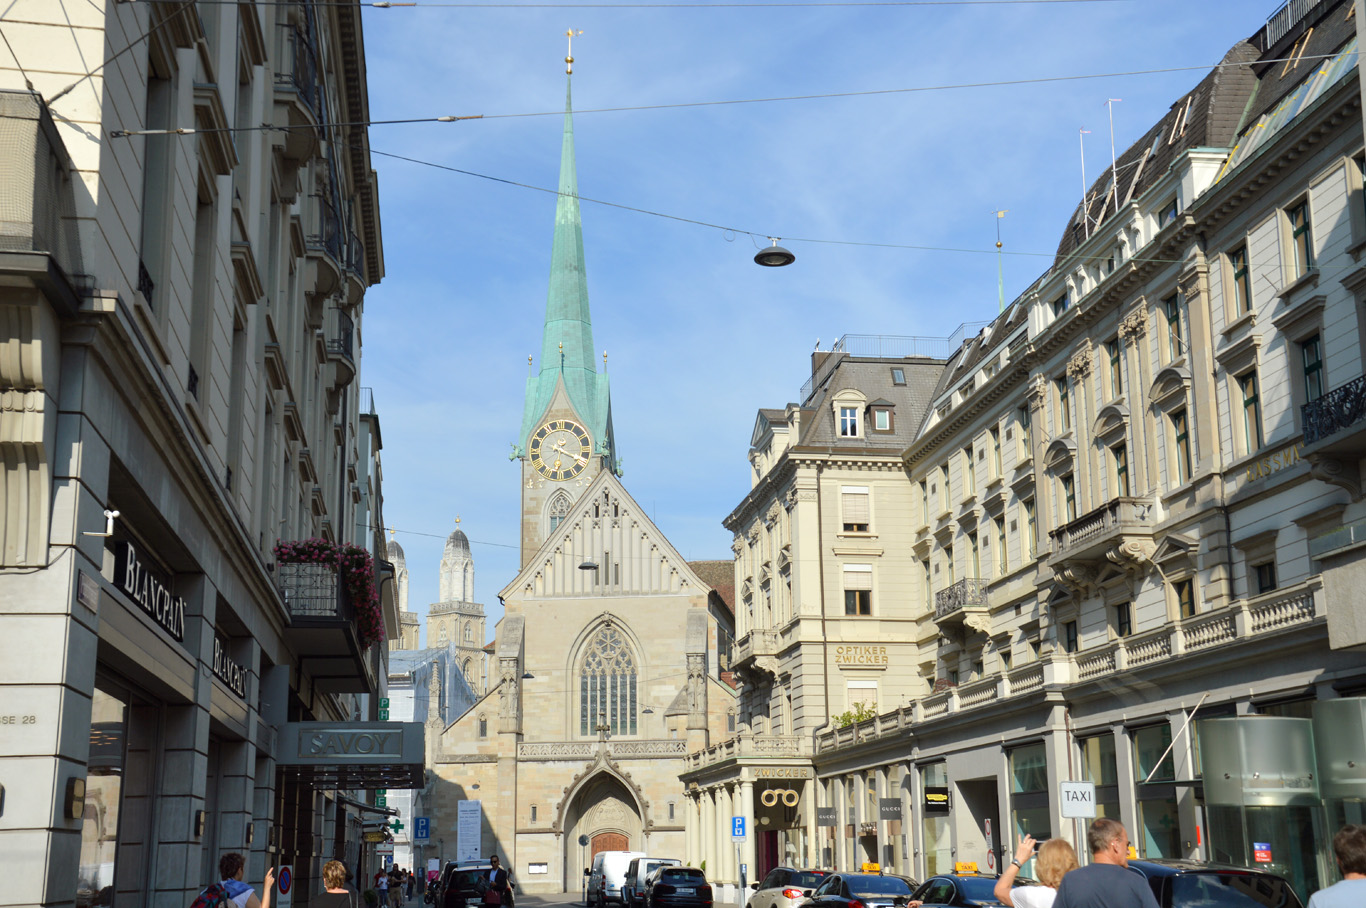 Bahnhofstrasse - the main two churches seen in the background